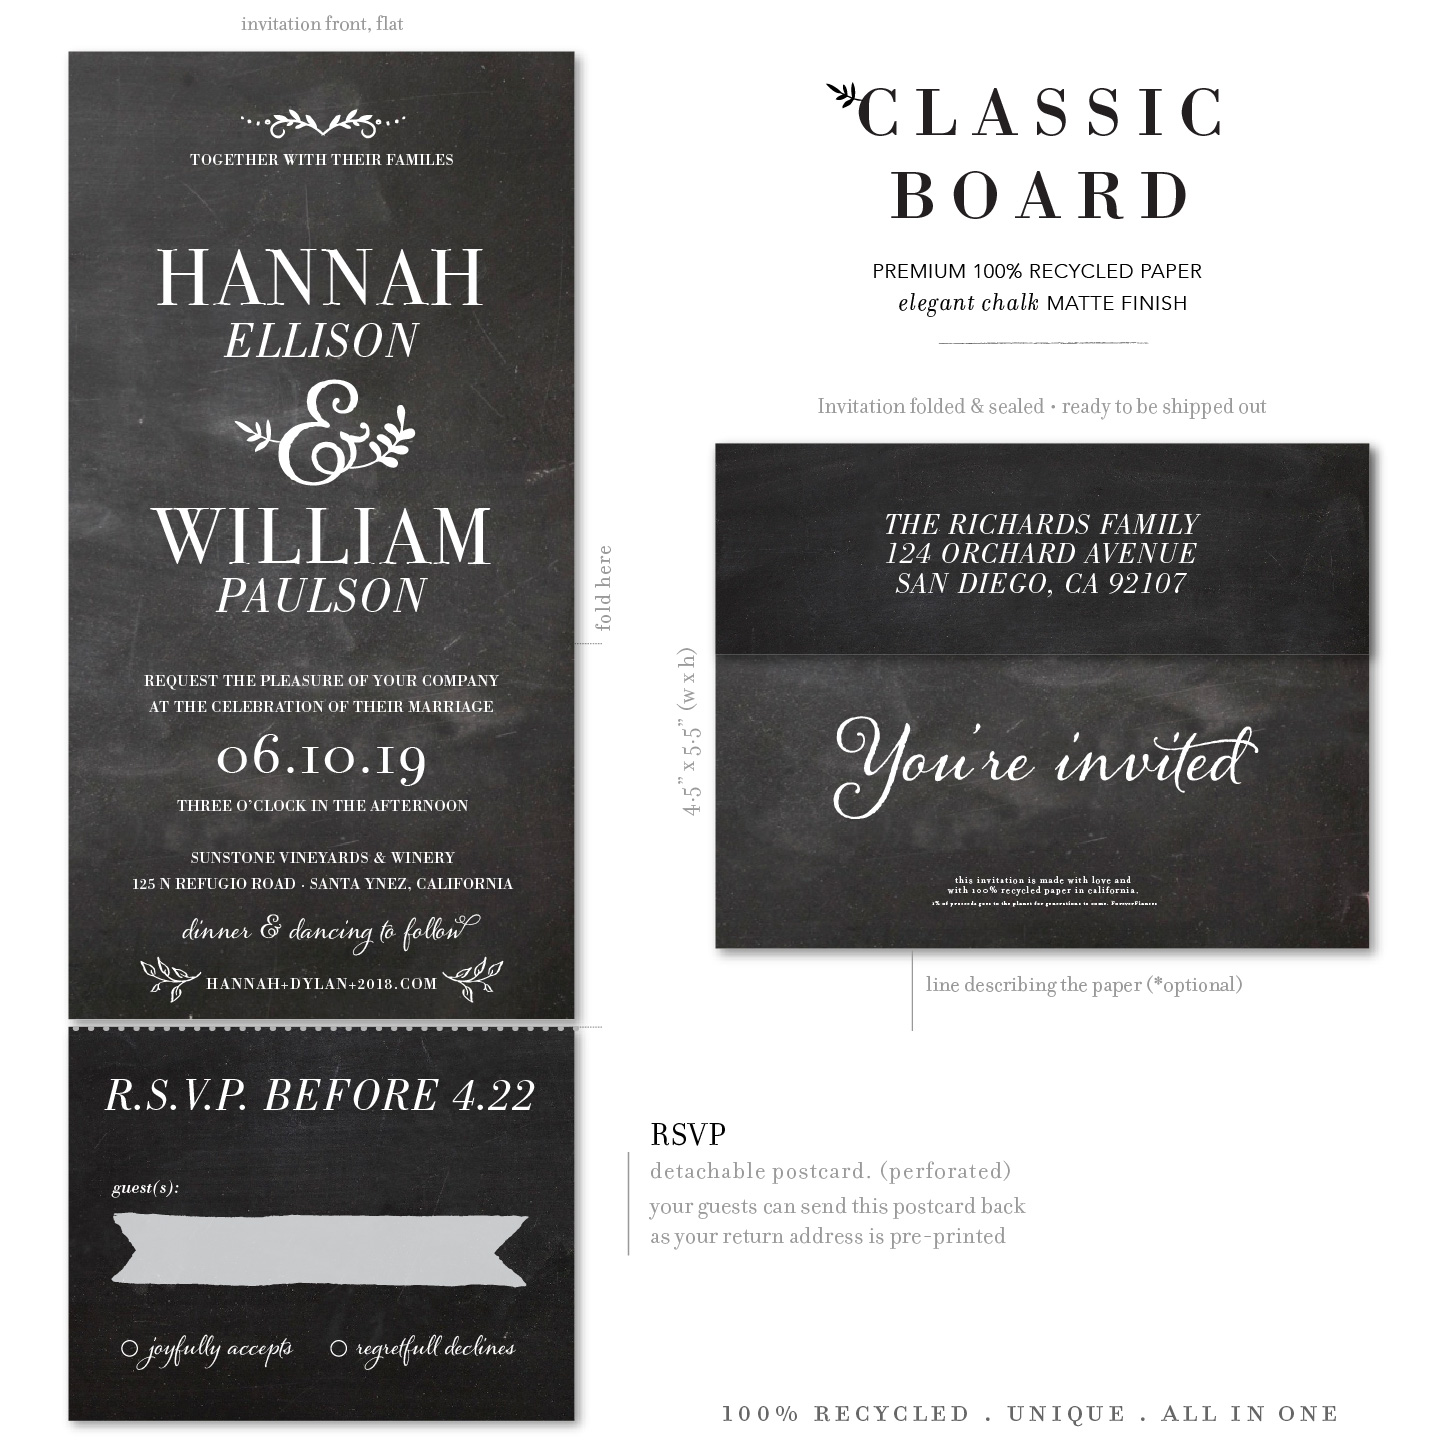 Classic Board chalk send and sealed invitations